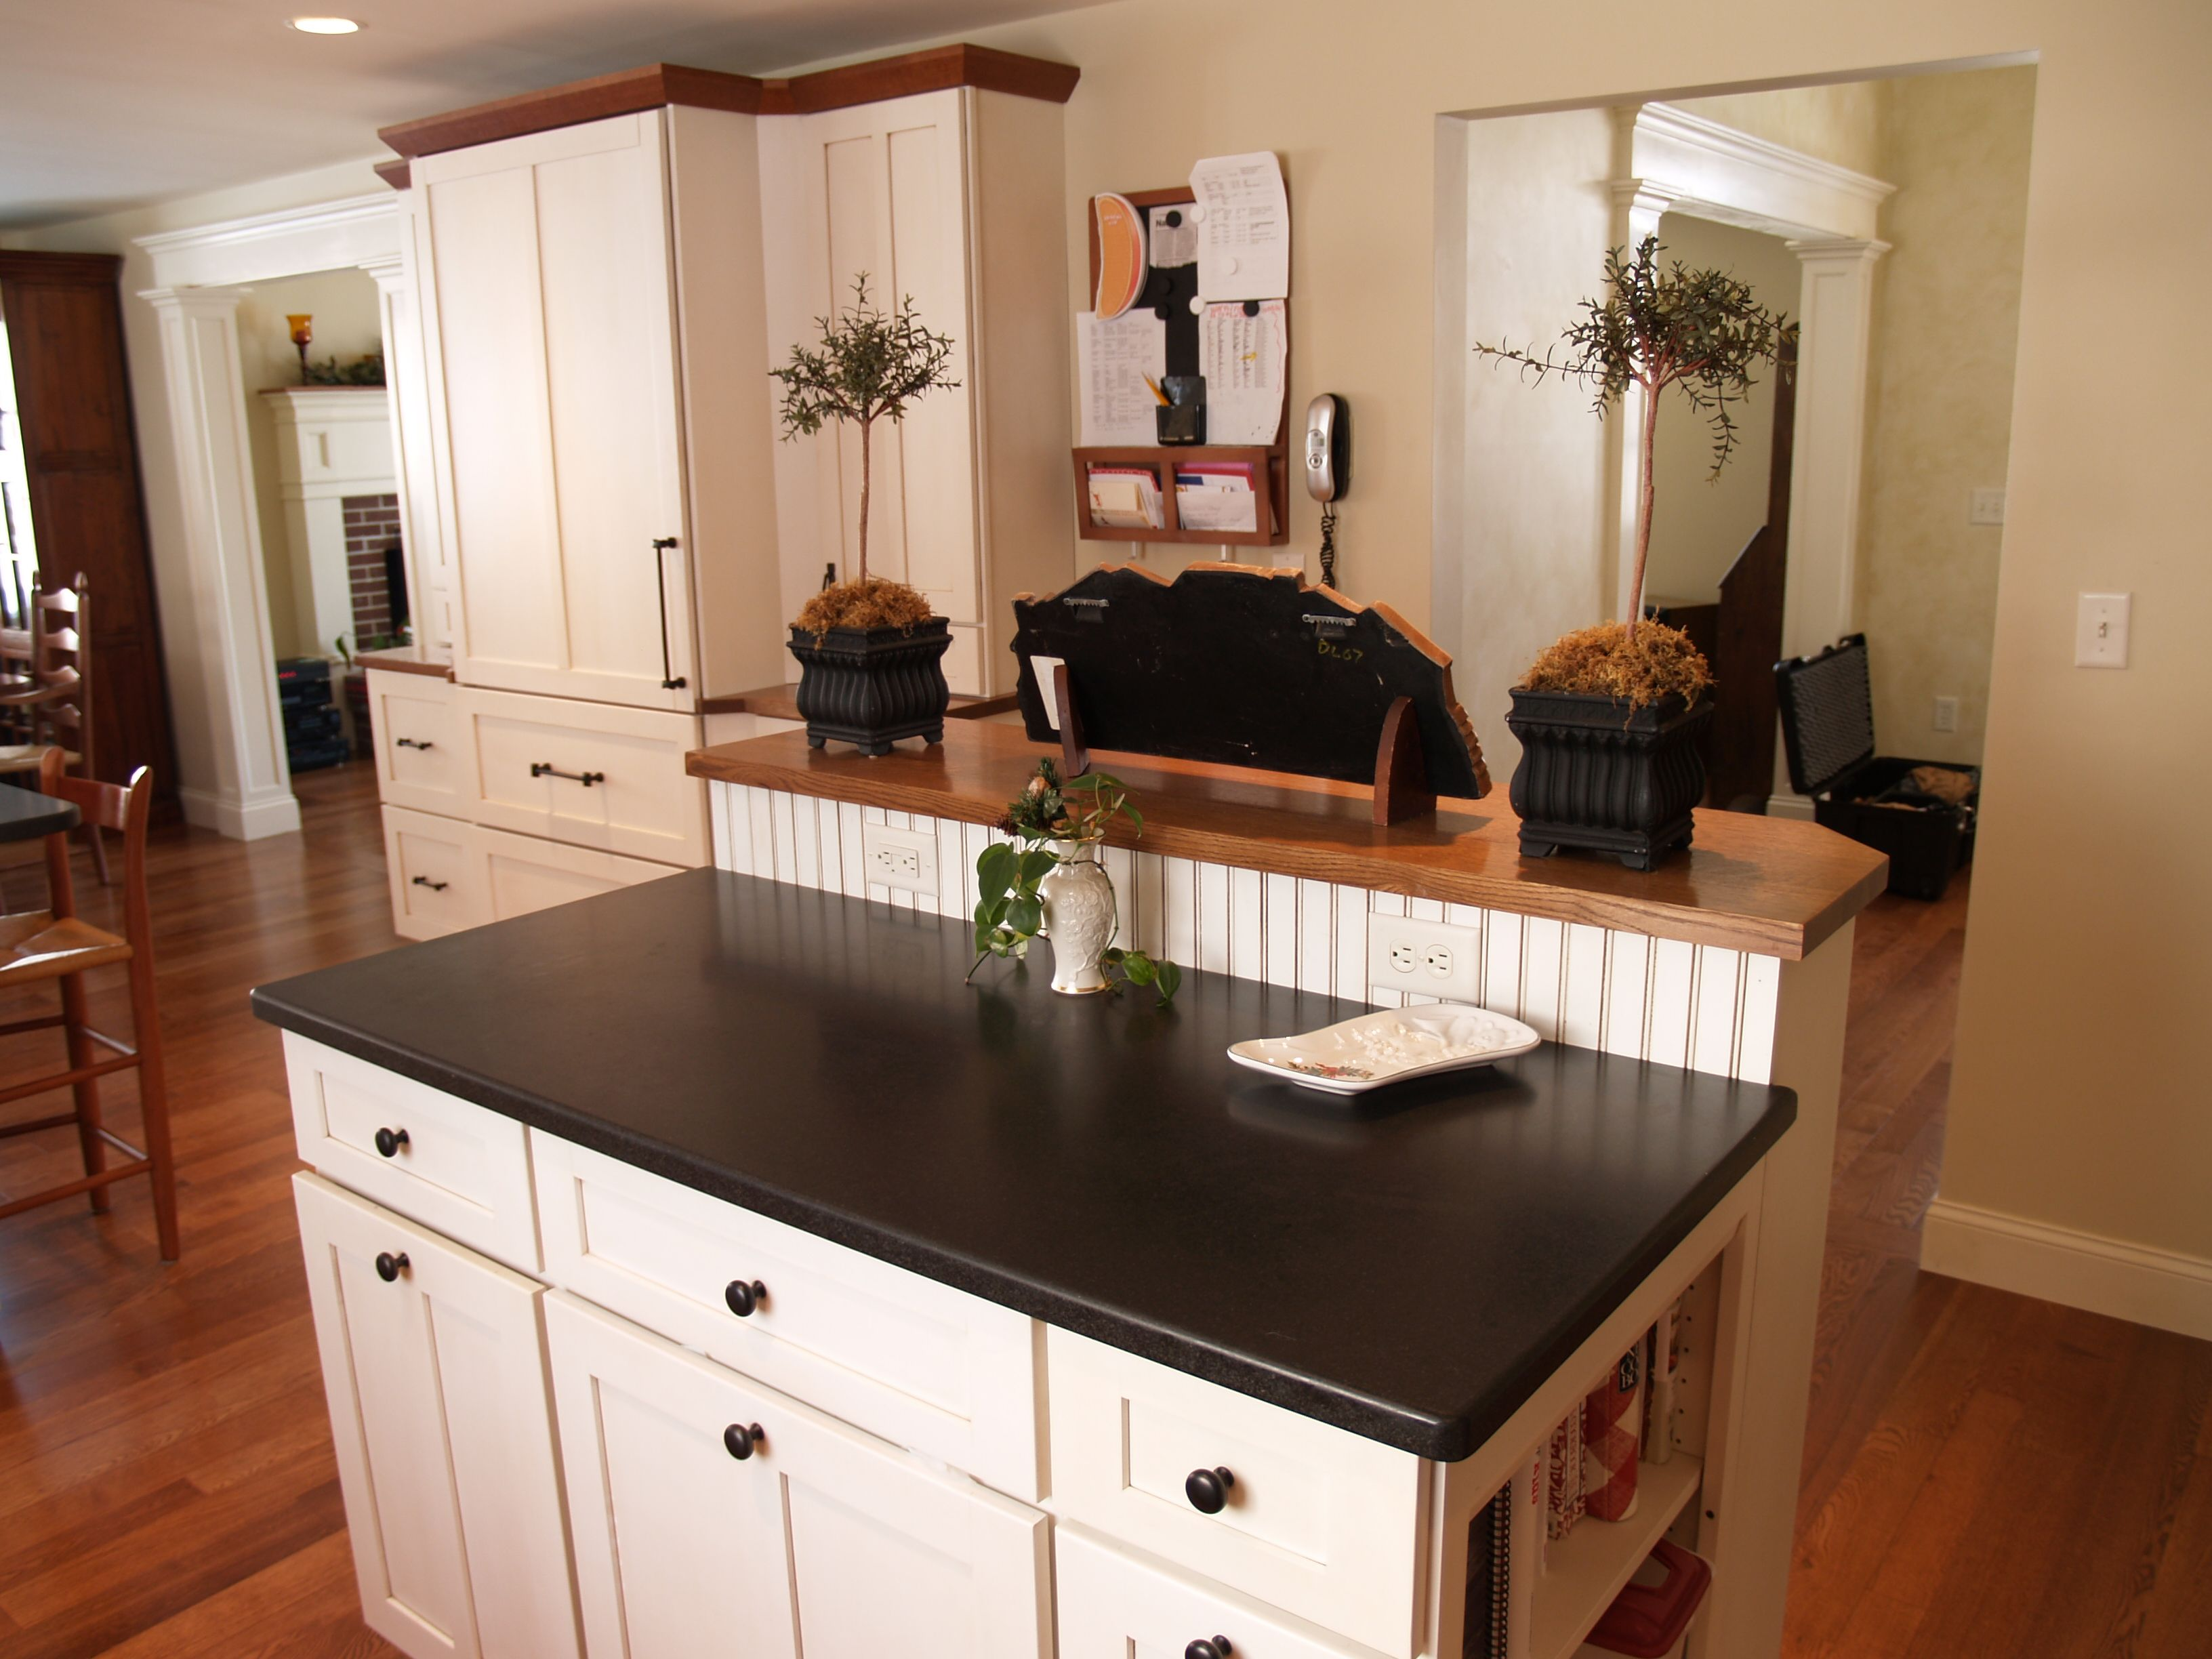 pendant built dark red wheels stoves counter ovens granite kitchen modern gloss cabinets in popular rolling fierce islands cabinetgray most colors countertop on lamps white classic